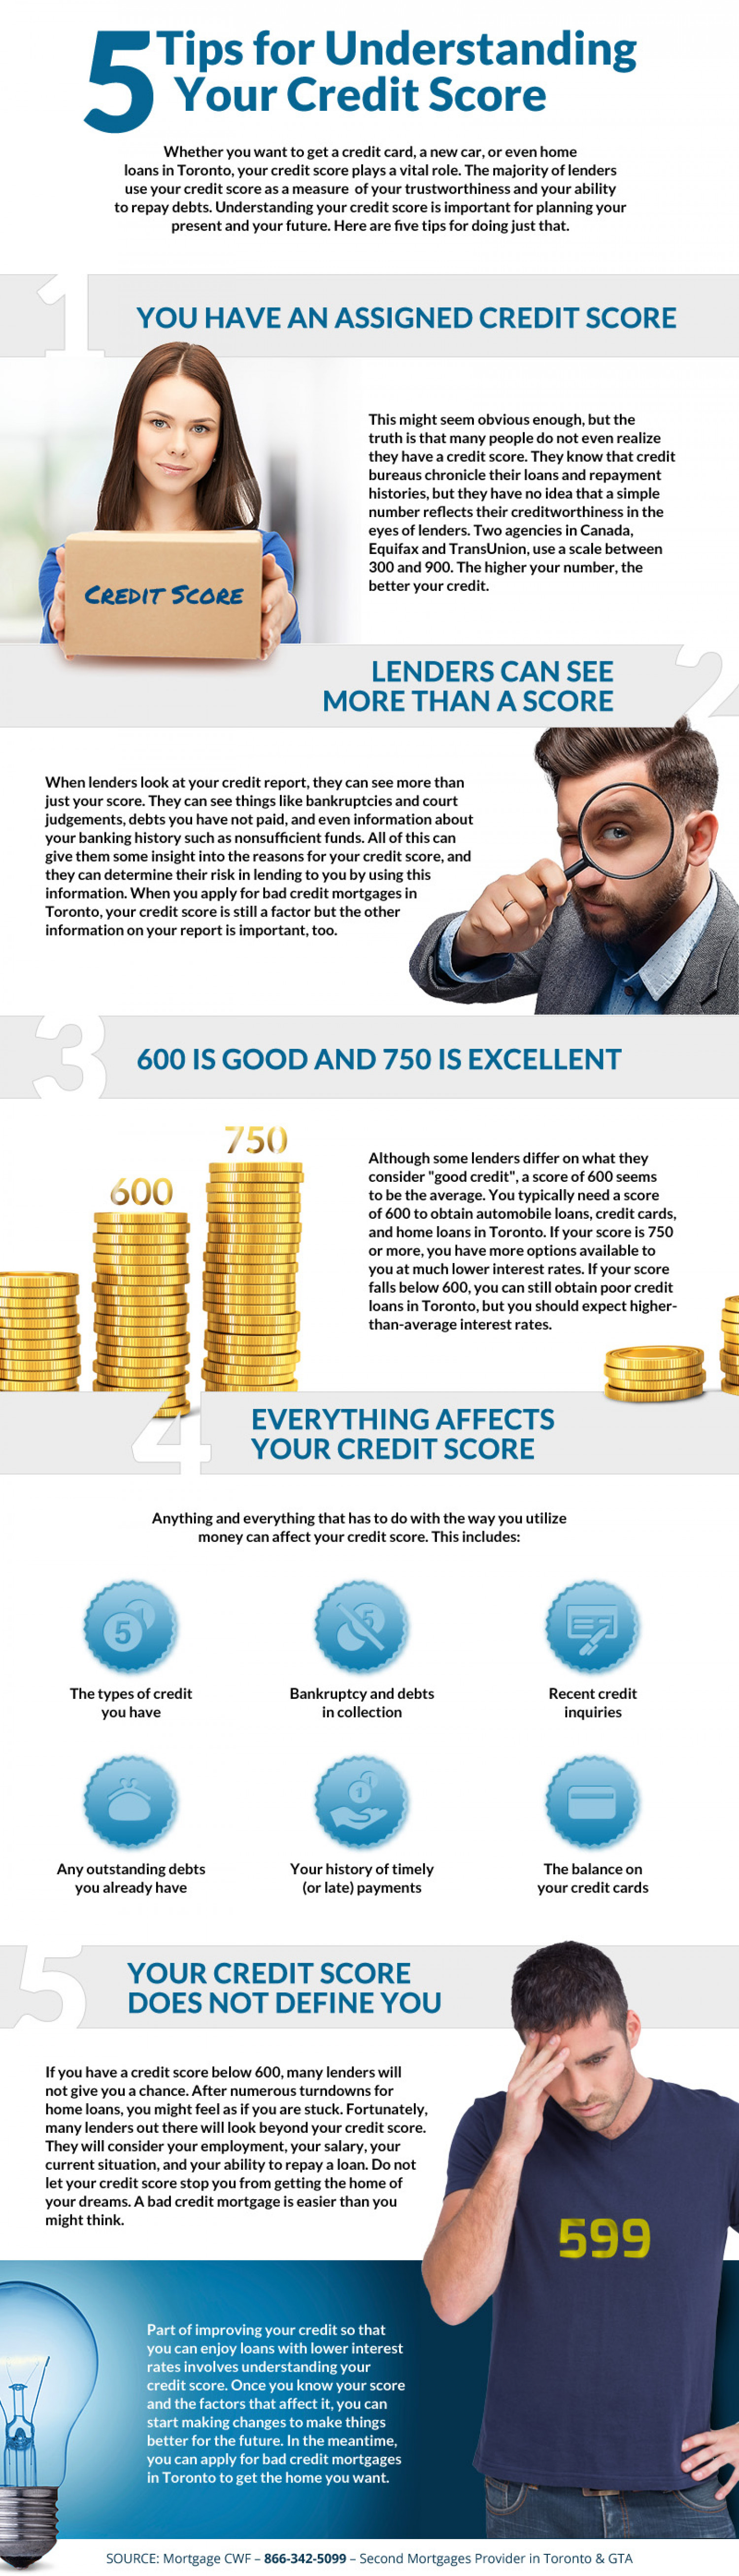 5 Tips for Understanding Your Credit Score Infographic